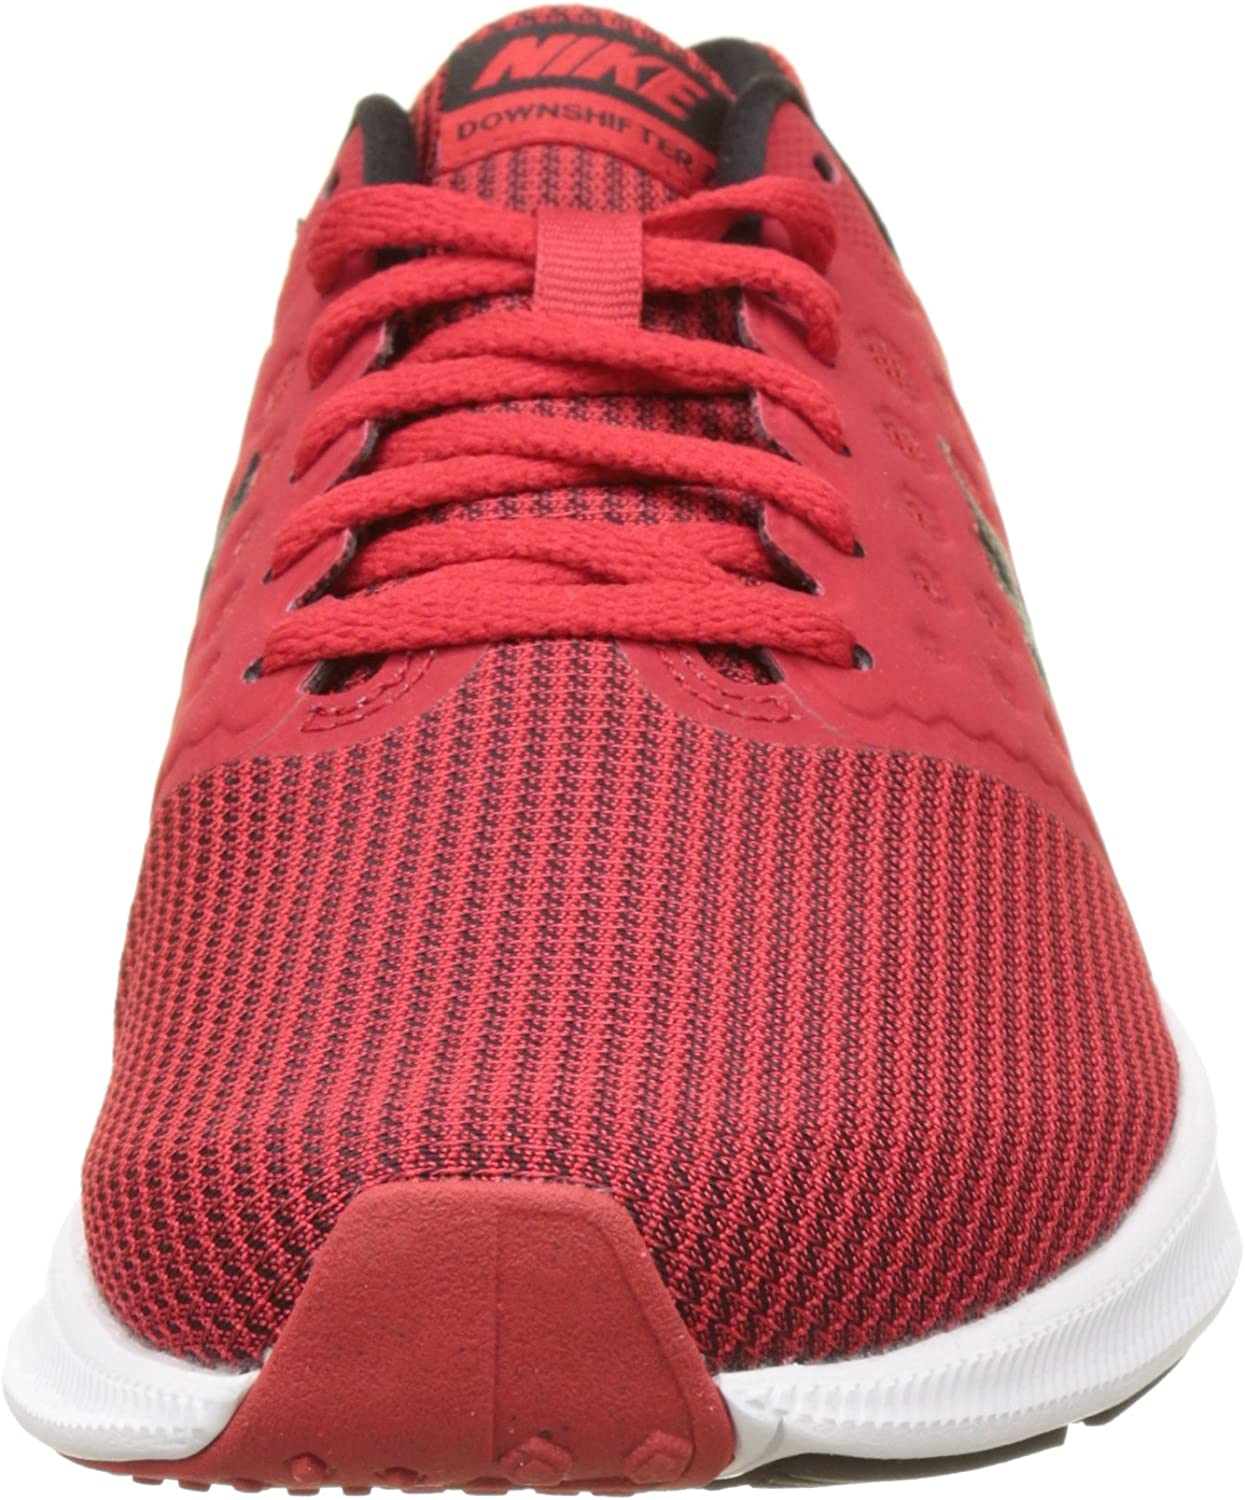 Nike Downshifter 7, Chaussures de Running Homme Rouge Universal Red Black White